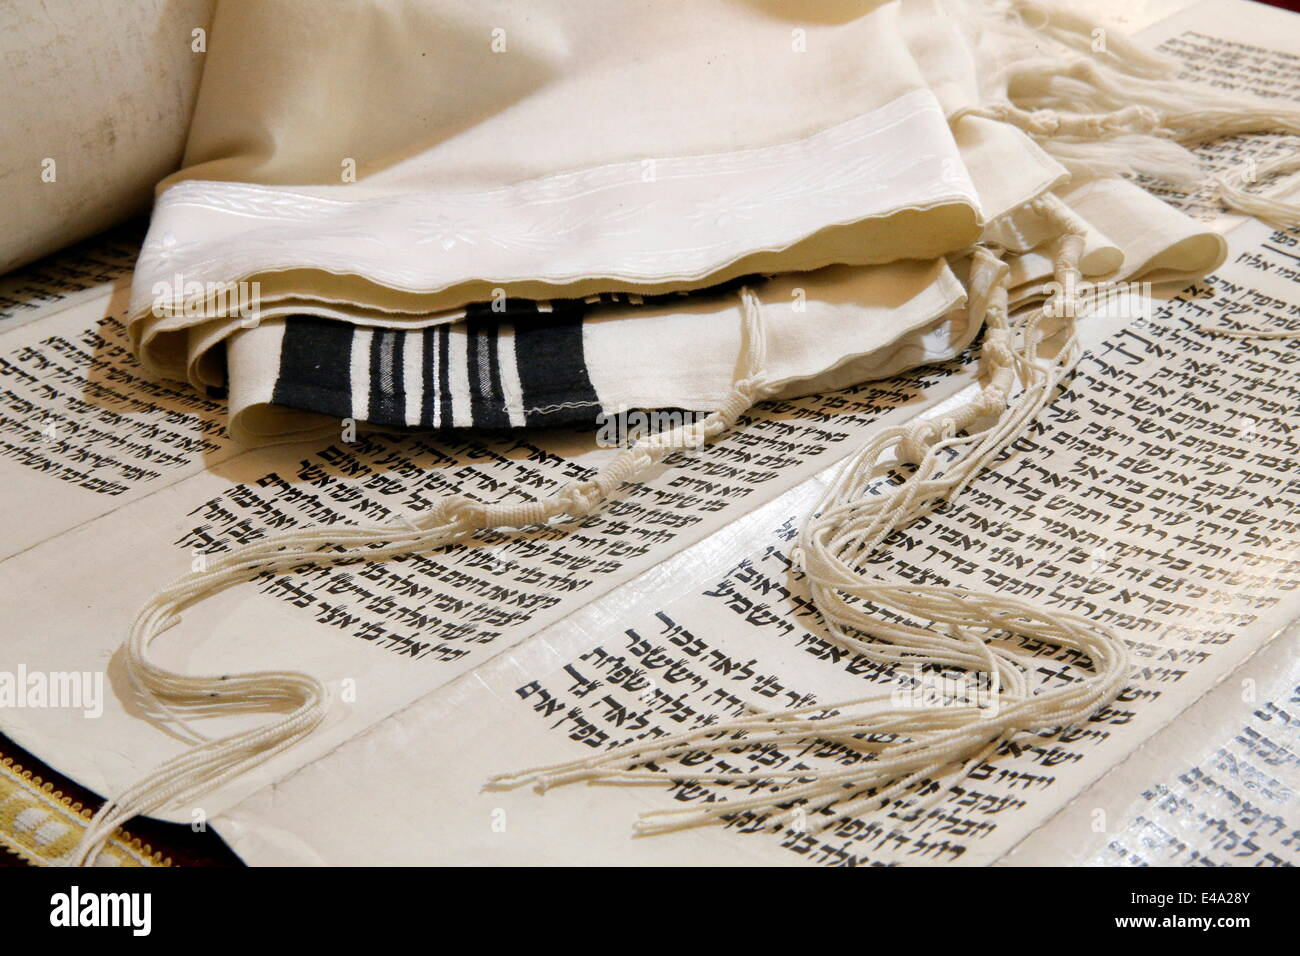 Torah scroll, Tallit, Jewish prayer shawl and Tziitzit, knotted ritual fringes, Paris, France, Europe - Stock Image